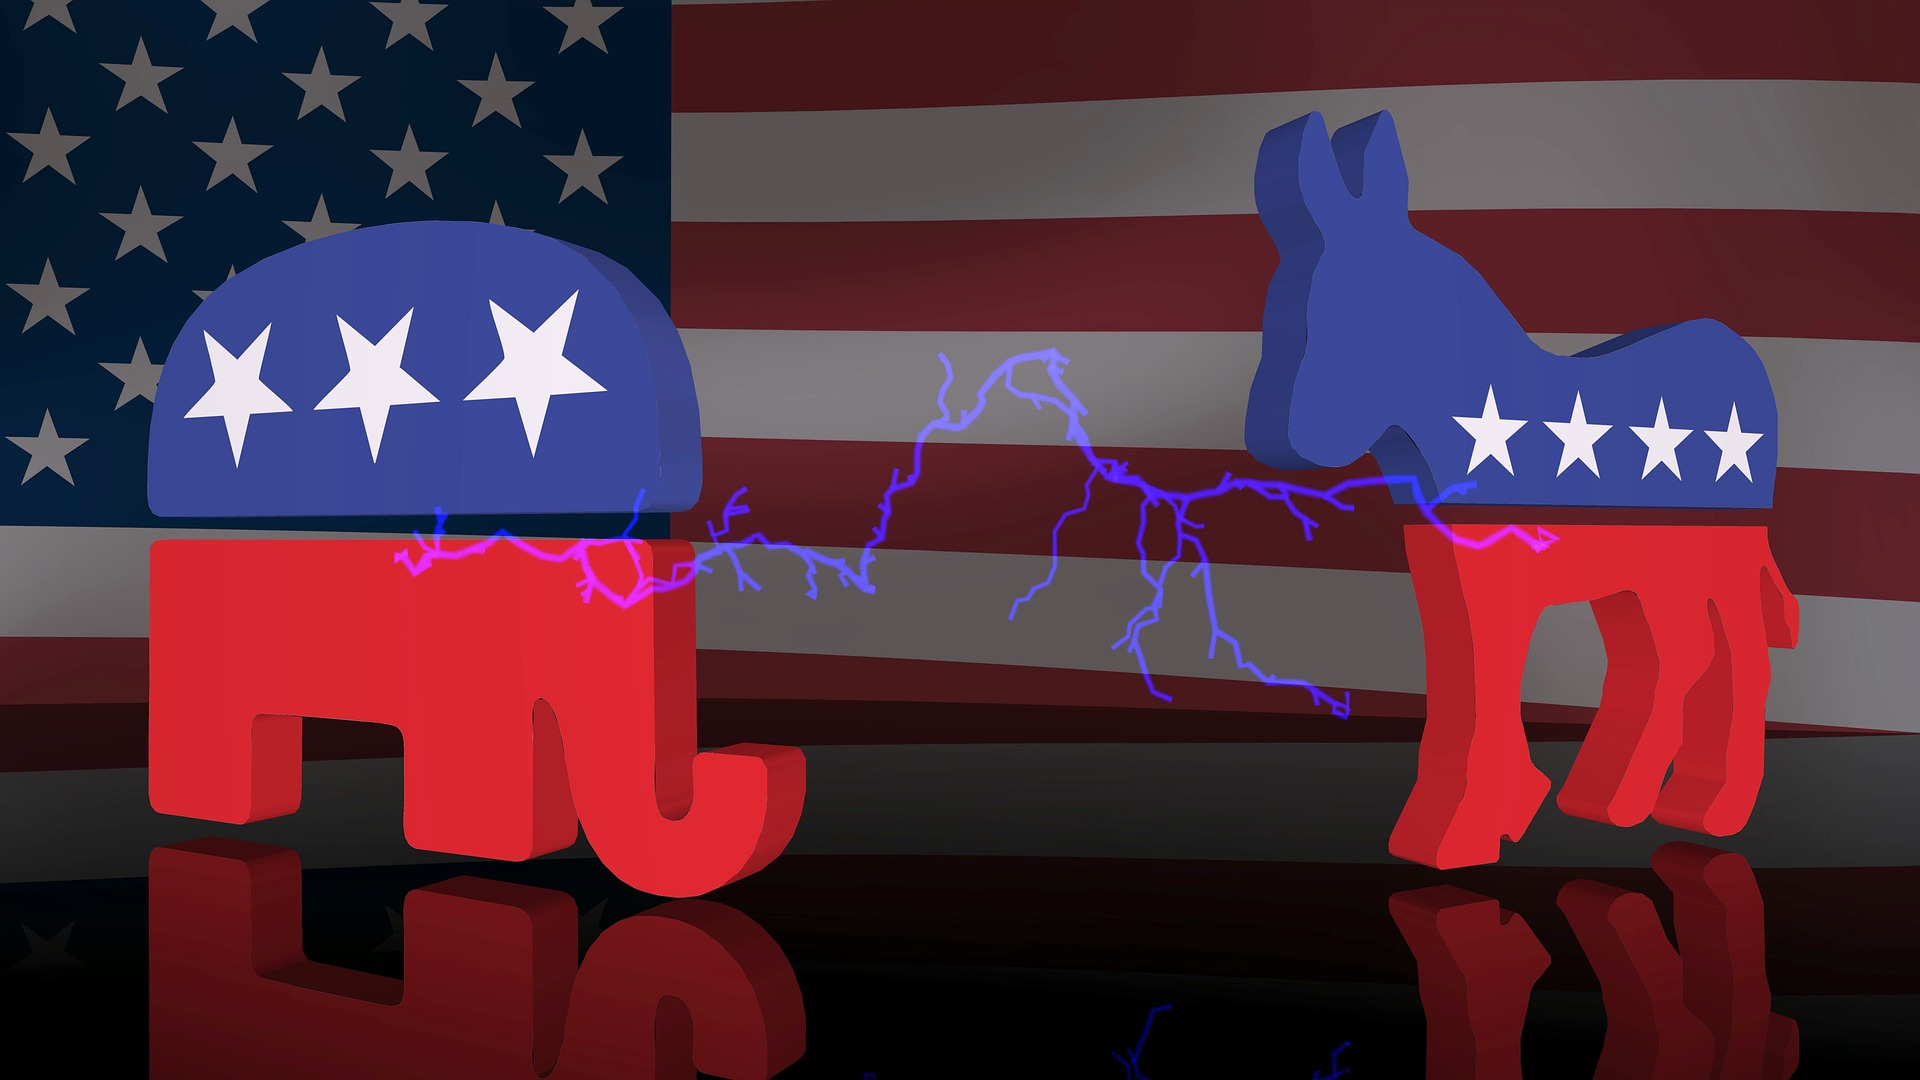 Our 2 Party Political System Names Should Be Changed